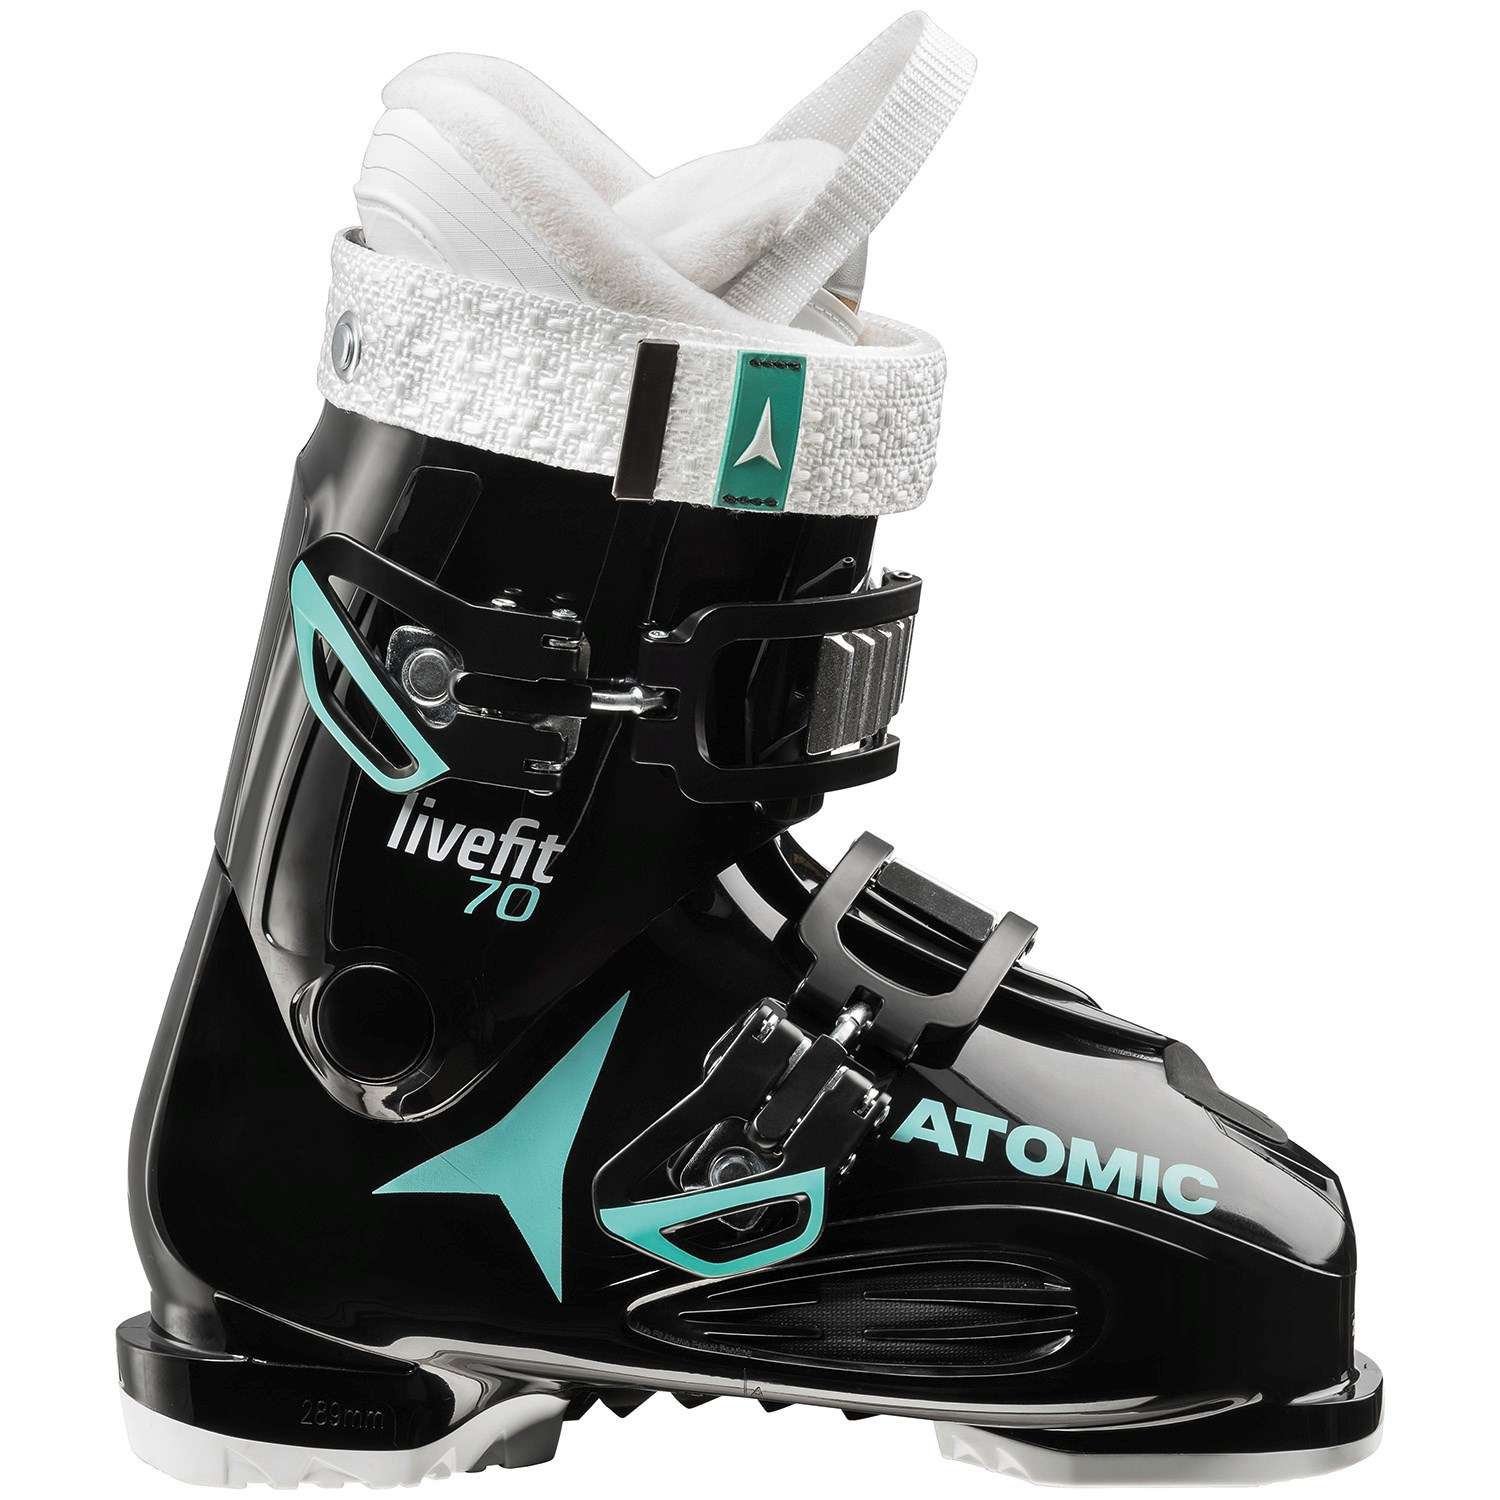 Atomic Live Fit 100 Transparent Green-Black - 2017 - 25.5 xKbIgPsRiz